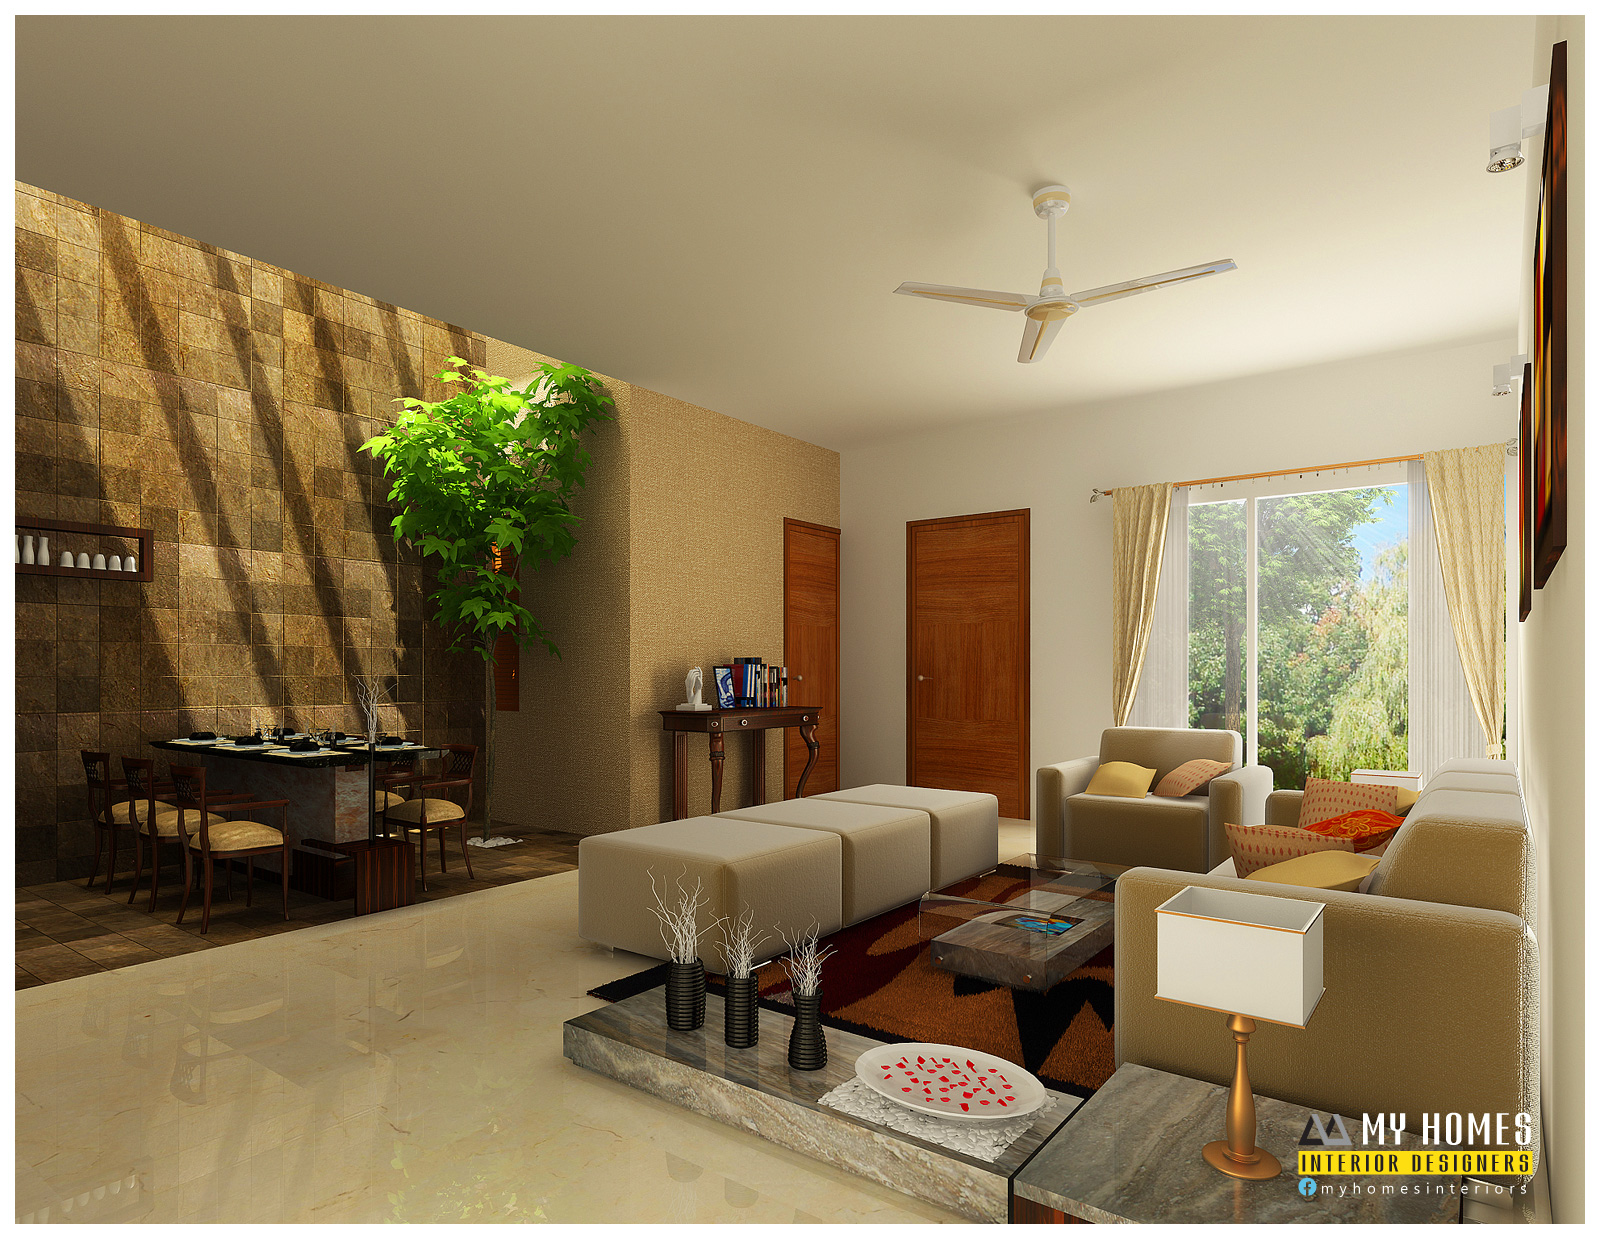 Kerala interior design ideas from designing company thrissur Home interior ideas